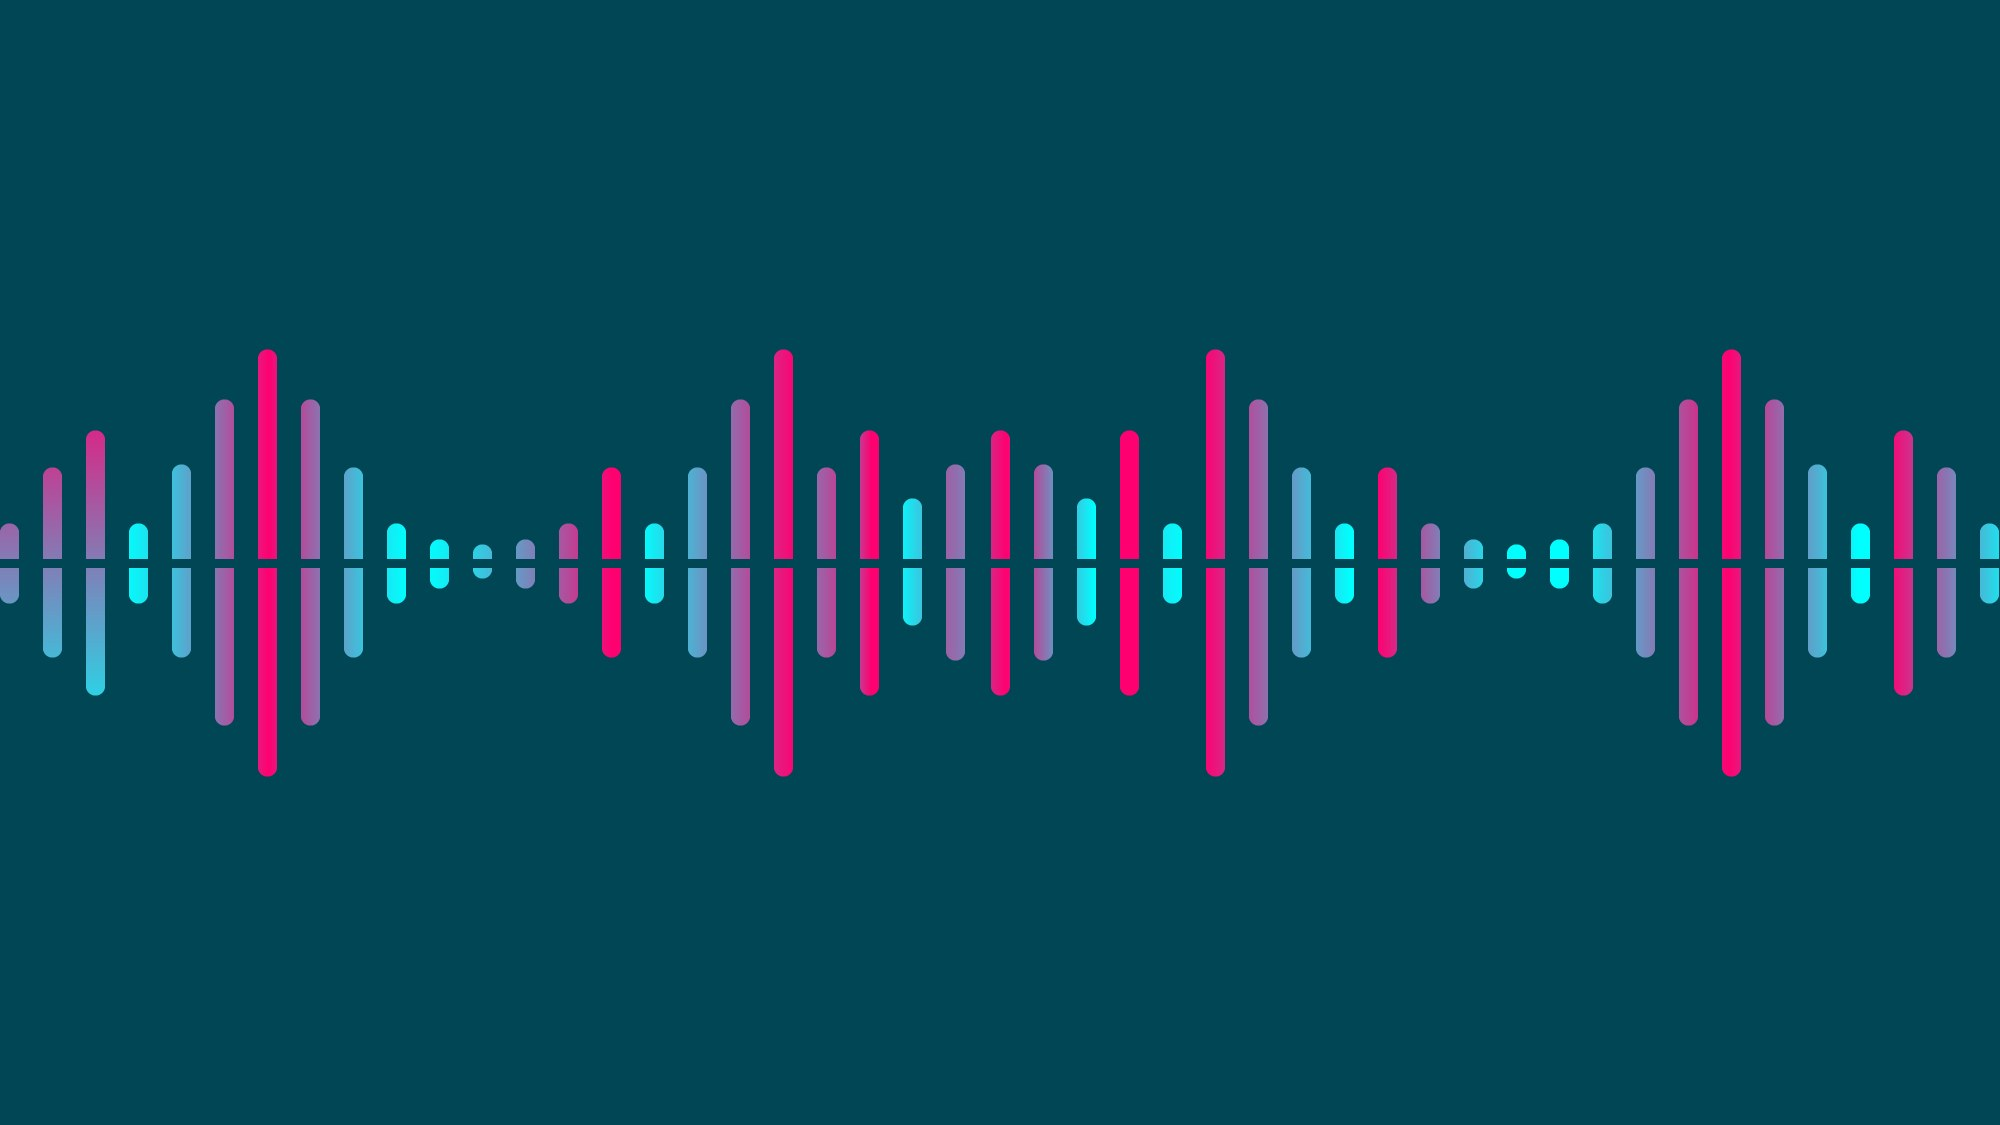 Image of soundwaves, depicted graphically in pinks and blues on a dark background.